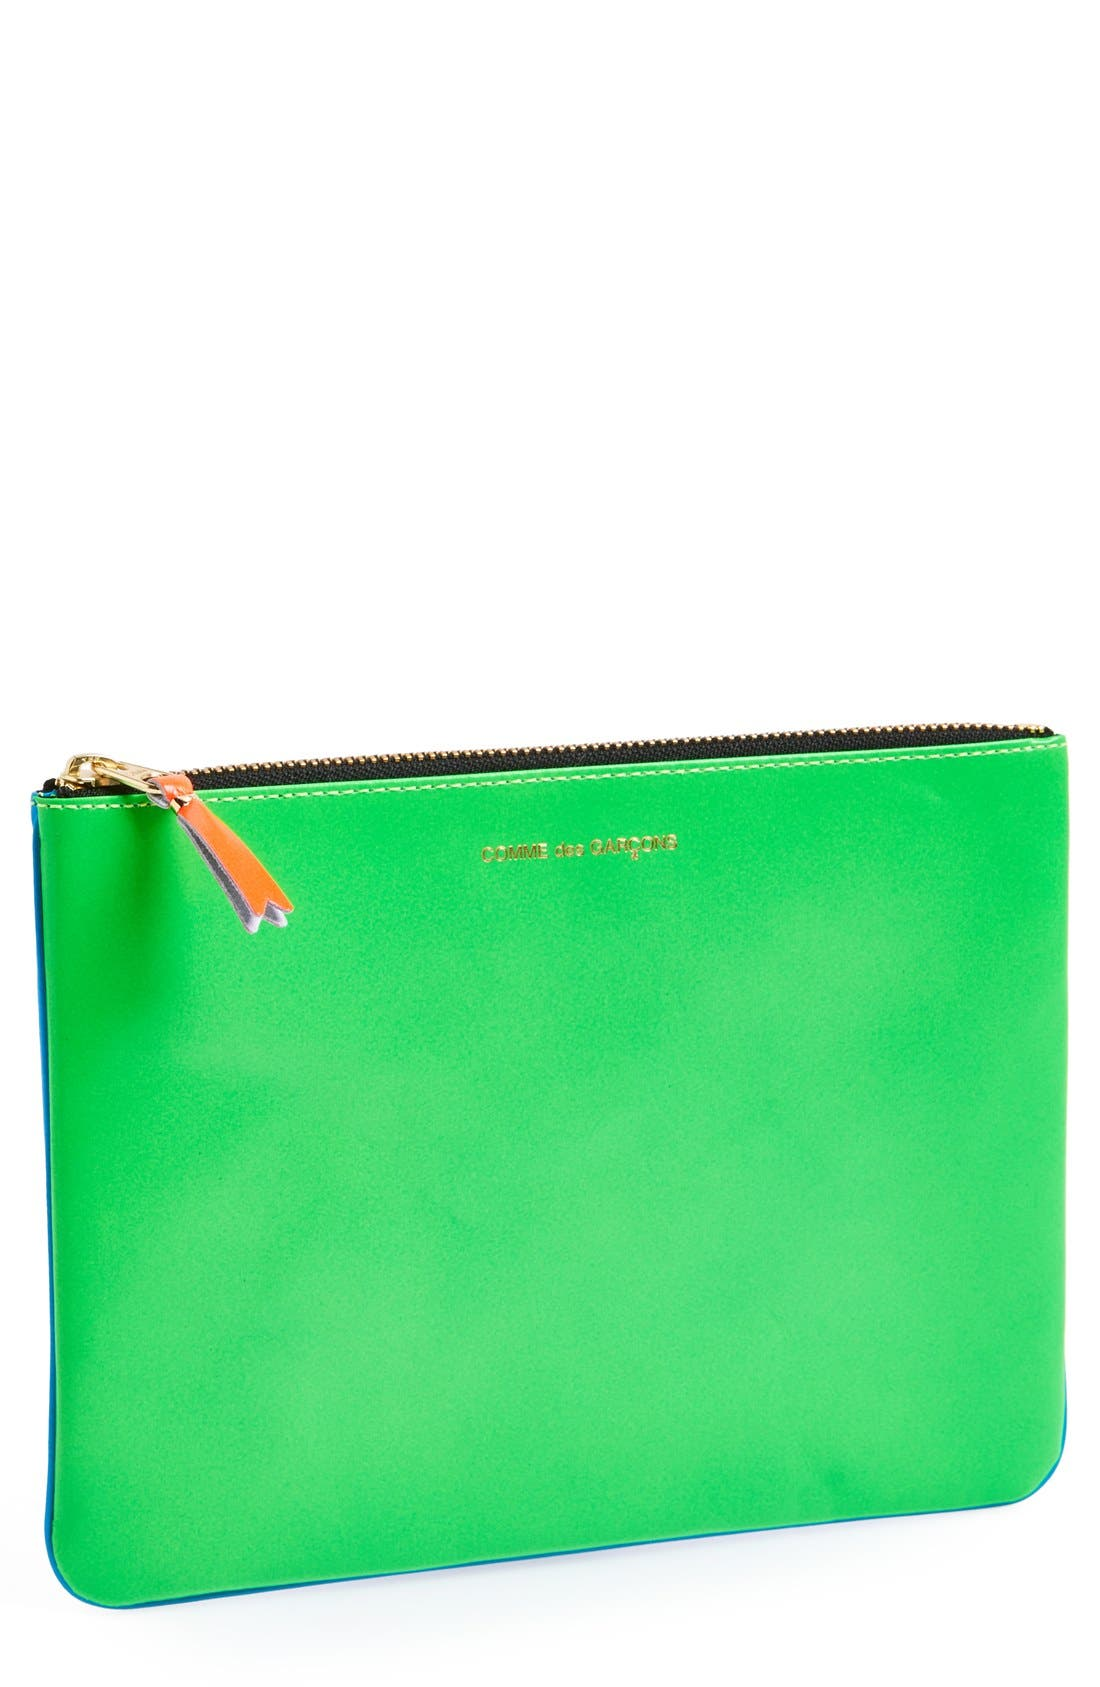 Comme des Garçons 'Super Fluo' Colorblock Leather Zip-Up Pouch